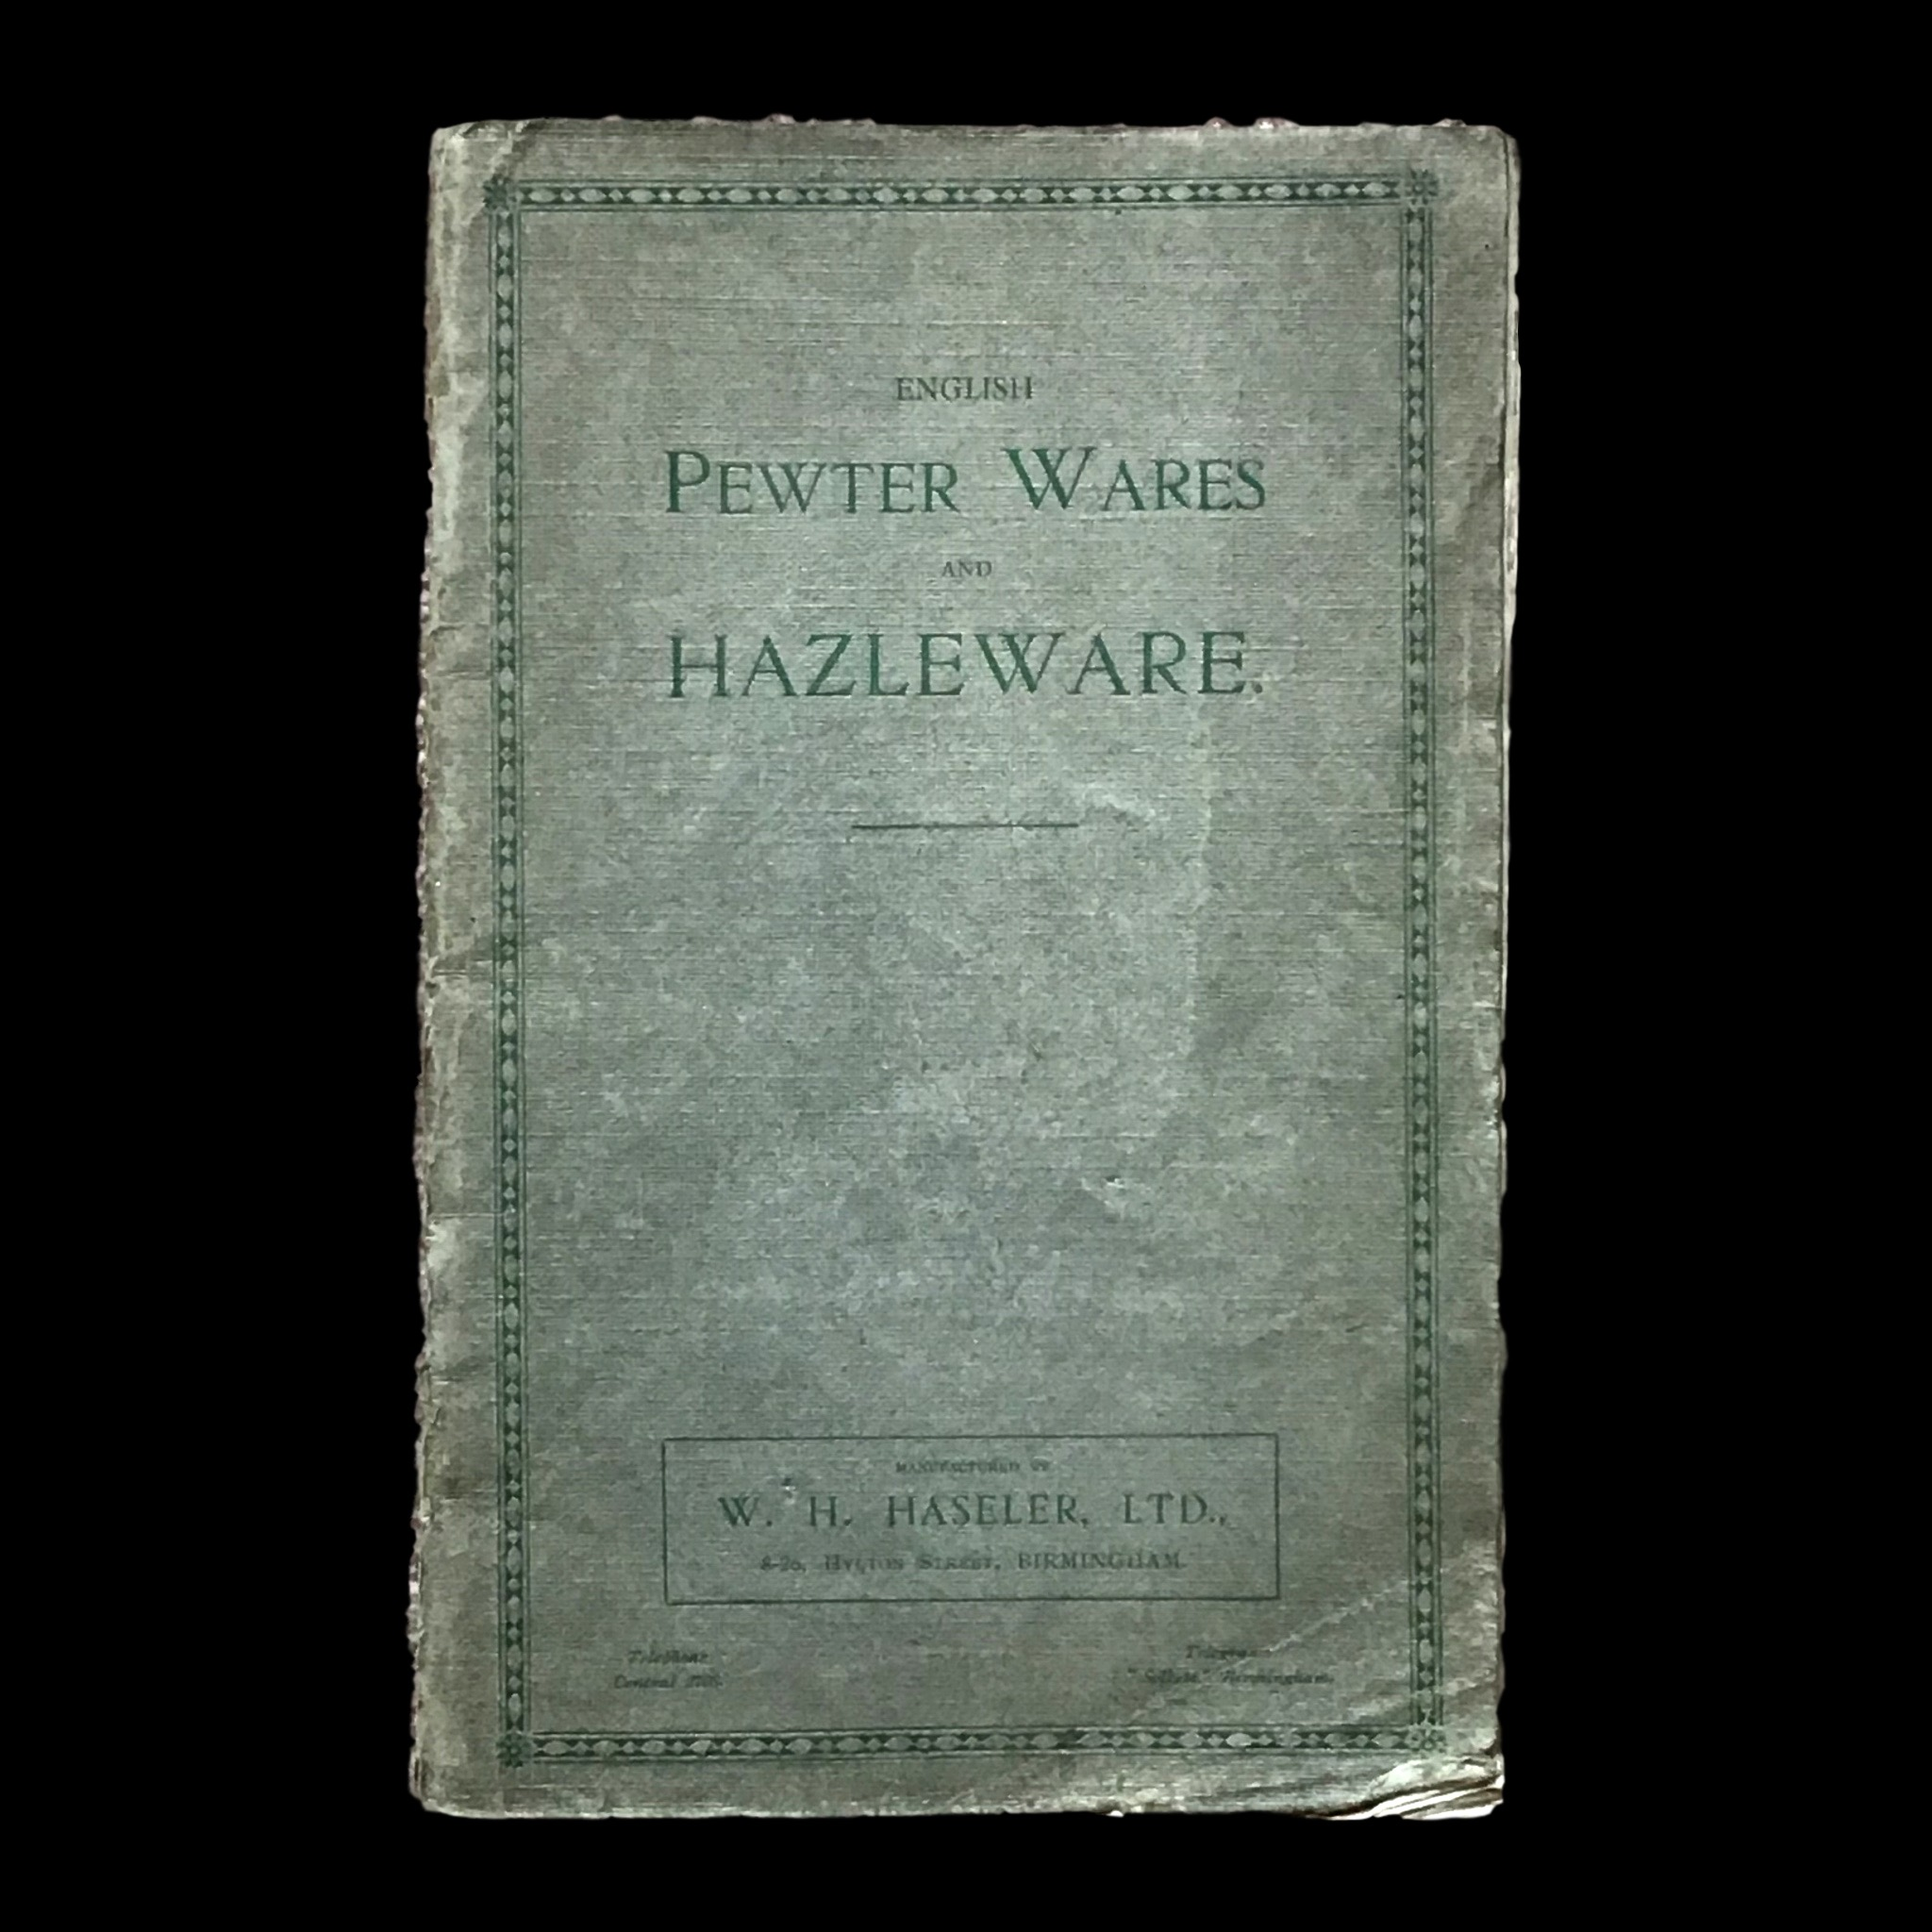 New Haseler/Tudric/Hazleware pewter research